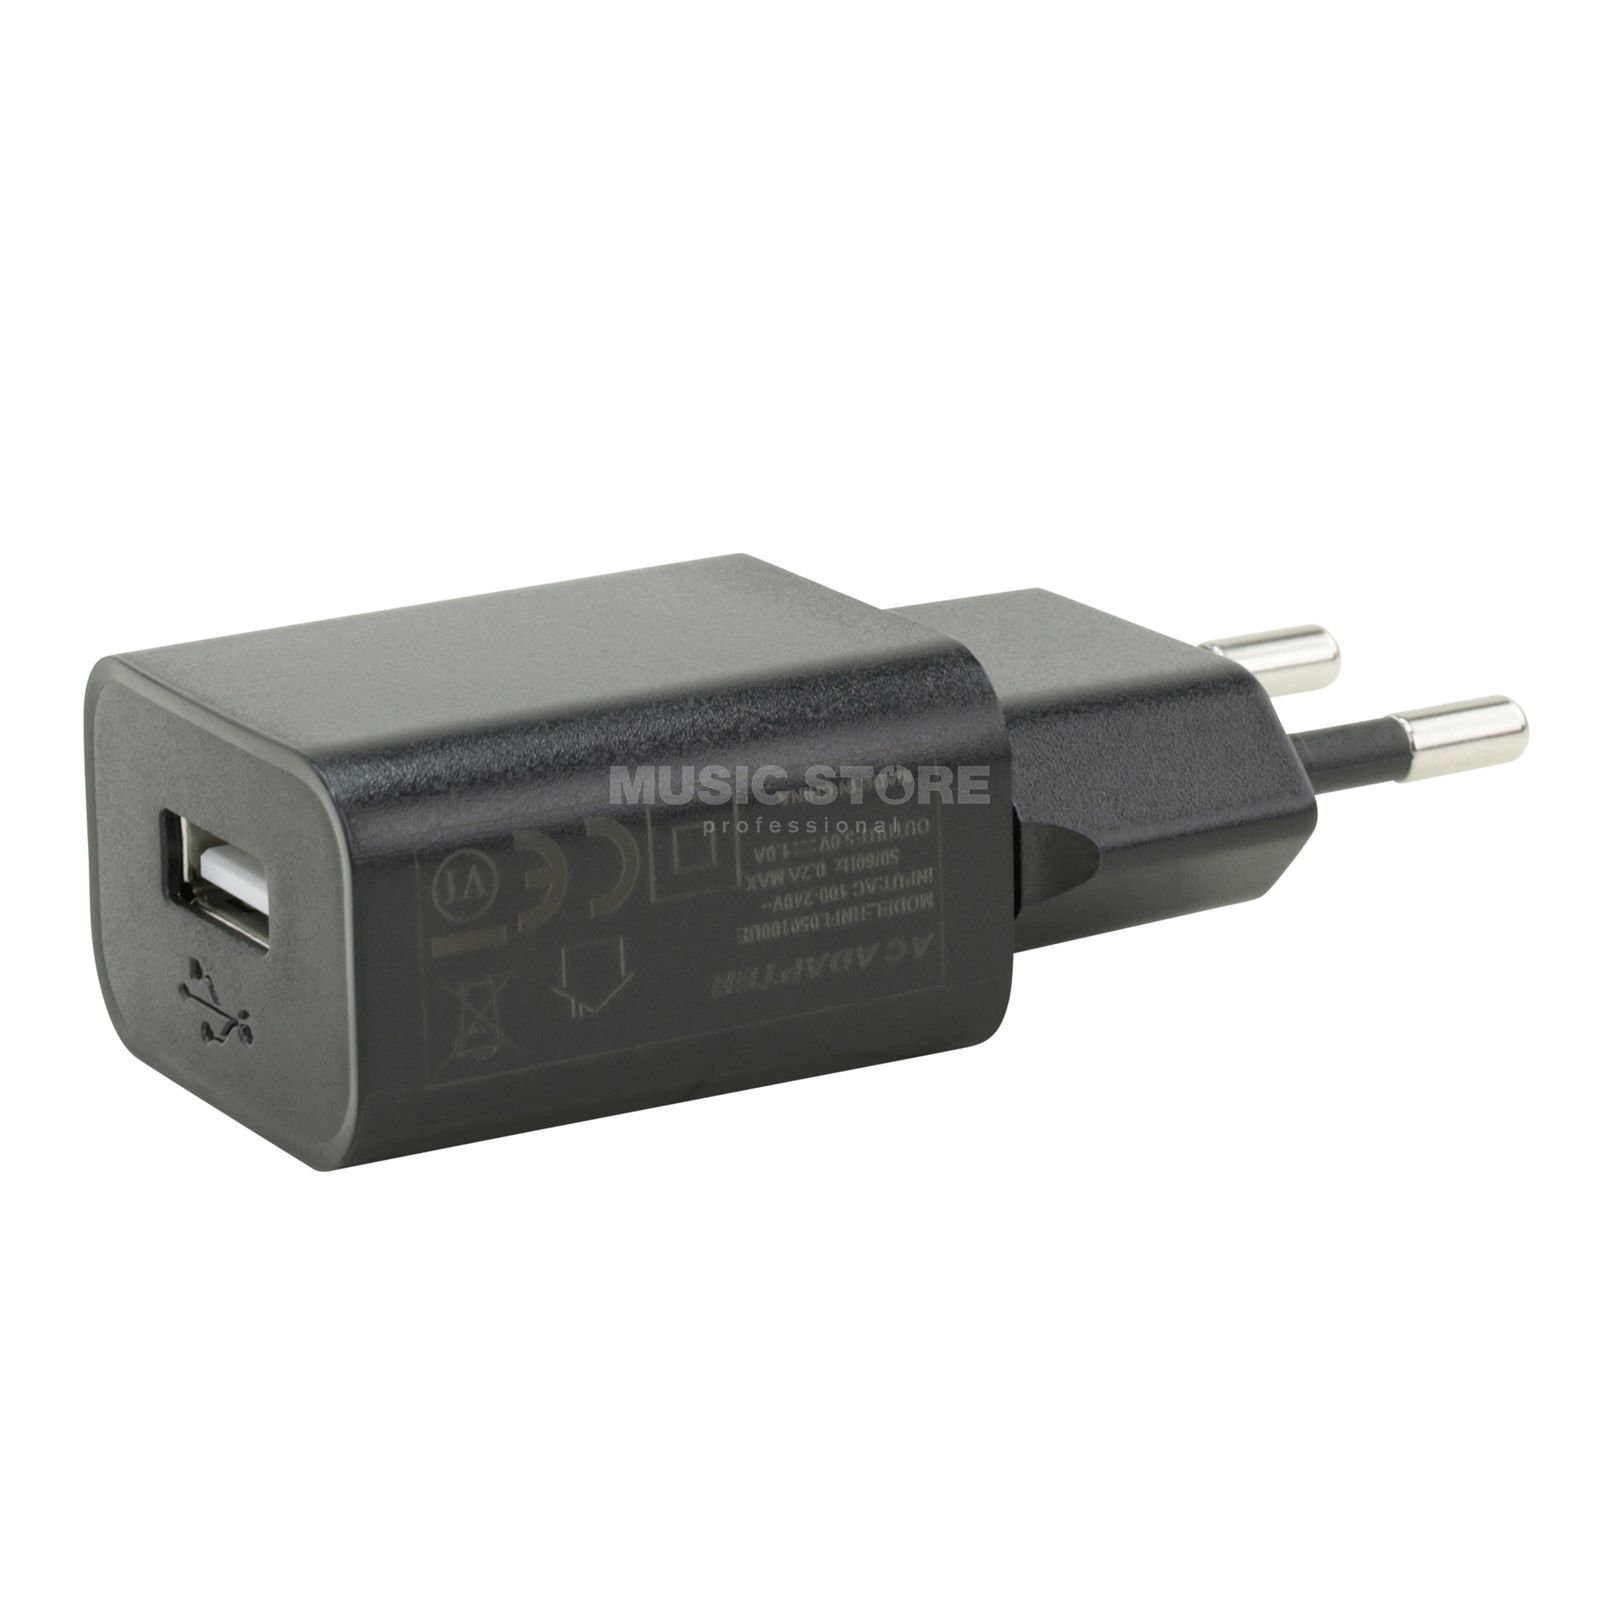 MUSIC STORE USB Power Supply with 1000mA 100-240V AC / 5V DC Produktbillede